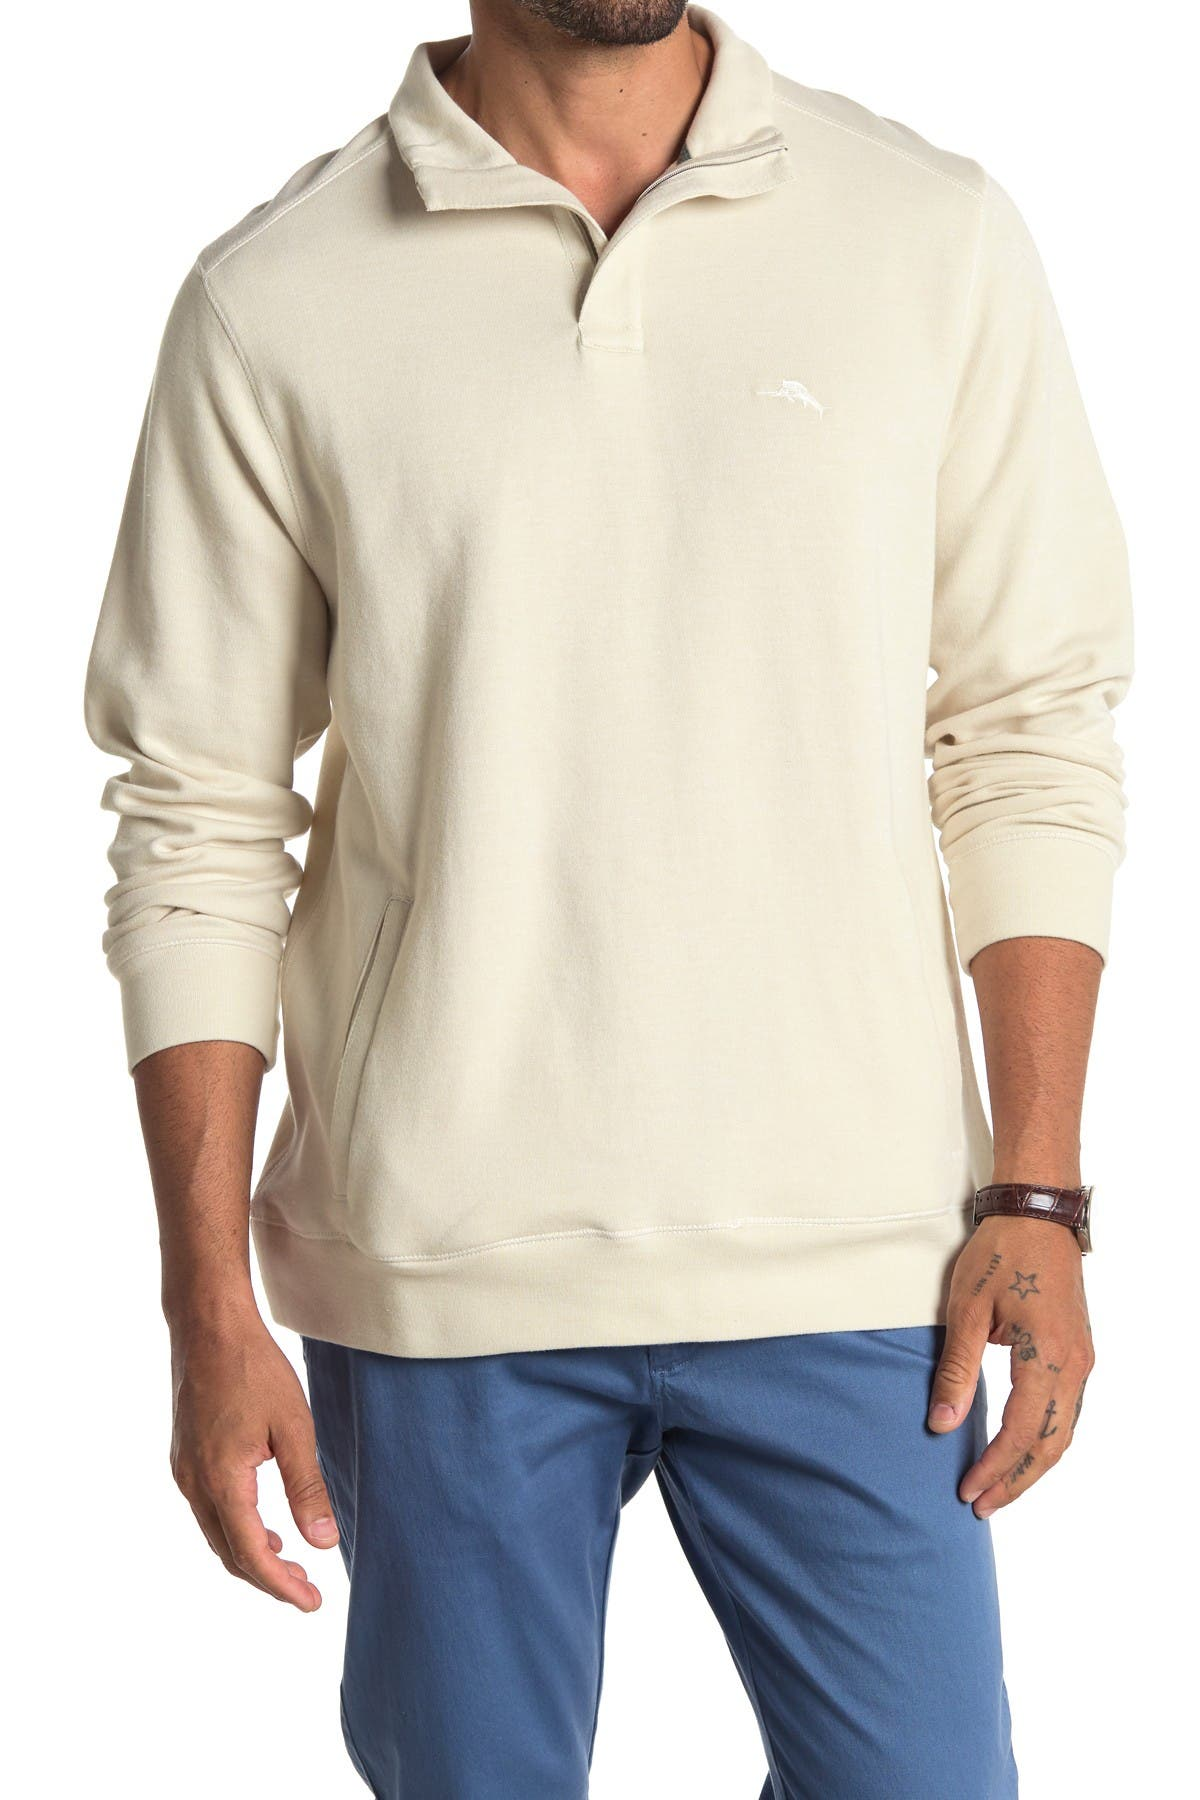 Image of Tommy Bahama Playa Pina Port Half Zip Pullover